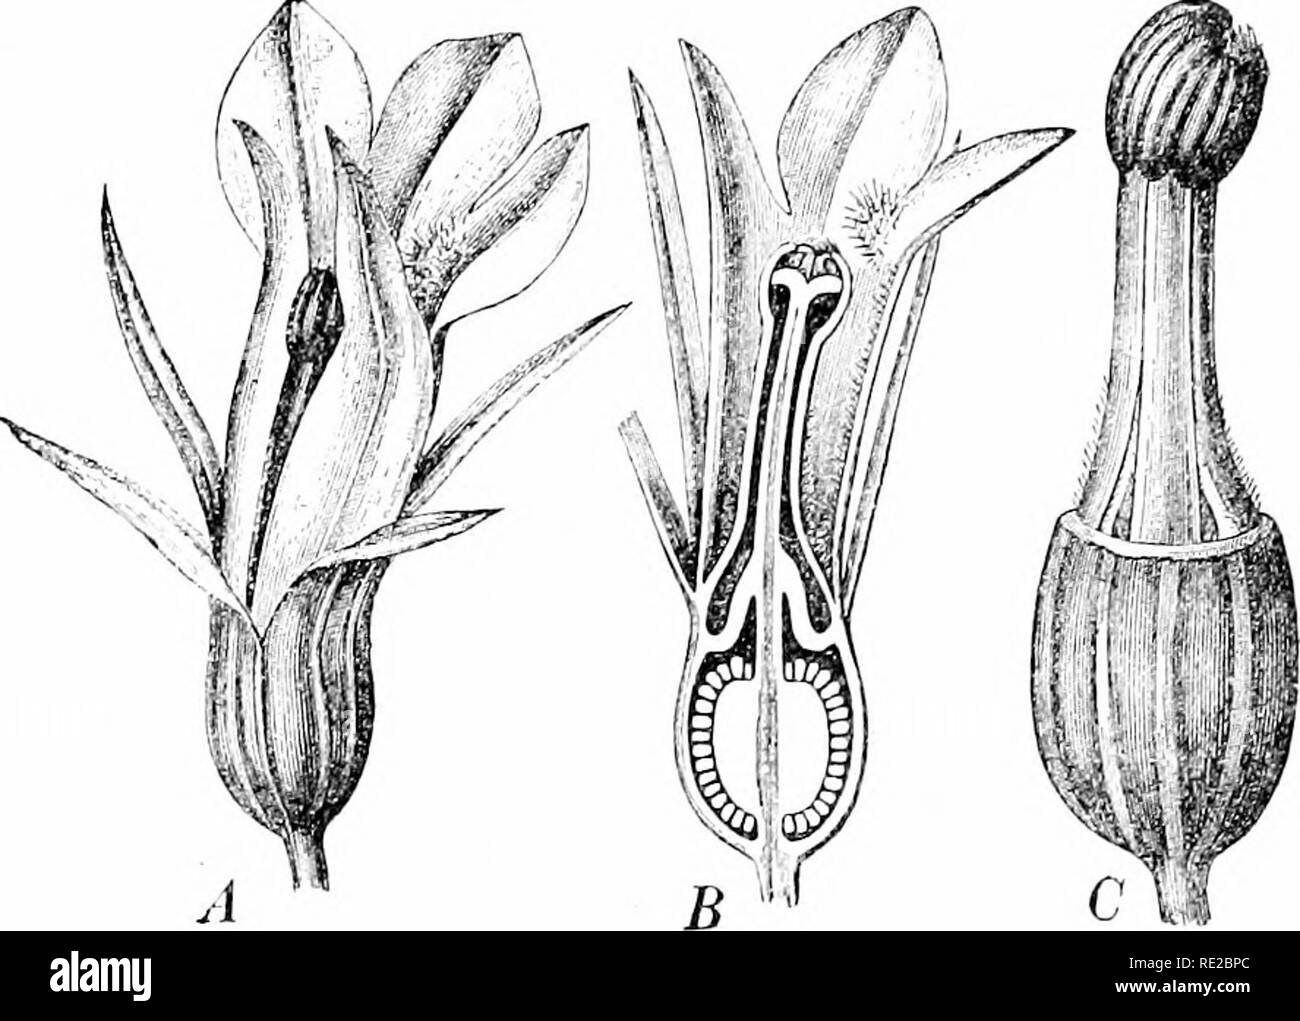 . Plants and their uses; an introduction to botany. Botany; Botany, Economic. Fig. 188, I,âIndian Tobacco (Lobelia inflala, Bellflower Family, Cam- â panulacetr). Flowering top. Tip of flower-cluster. Fruit. (Britton and Brown.)âAn annual, growing 1 ni. tall or less; leaves hairy; flowers light blue; fruit smooth. Native home, North America.. Fig. 188, II.âIndian Tobacco. -1, flower, entire, J. B, same, cut verti- cally. (', flower, with cal_vx and corolla removed. (Luerssen.). Please note that these images are extracted from scanned page images that may have been digitally enhanced for readab - Stock Image